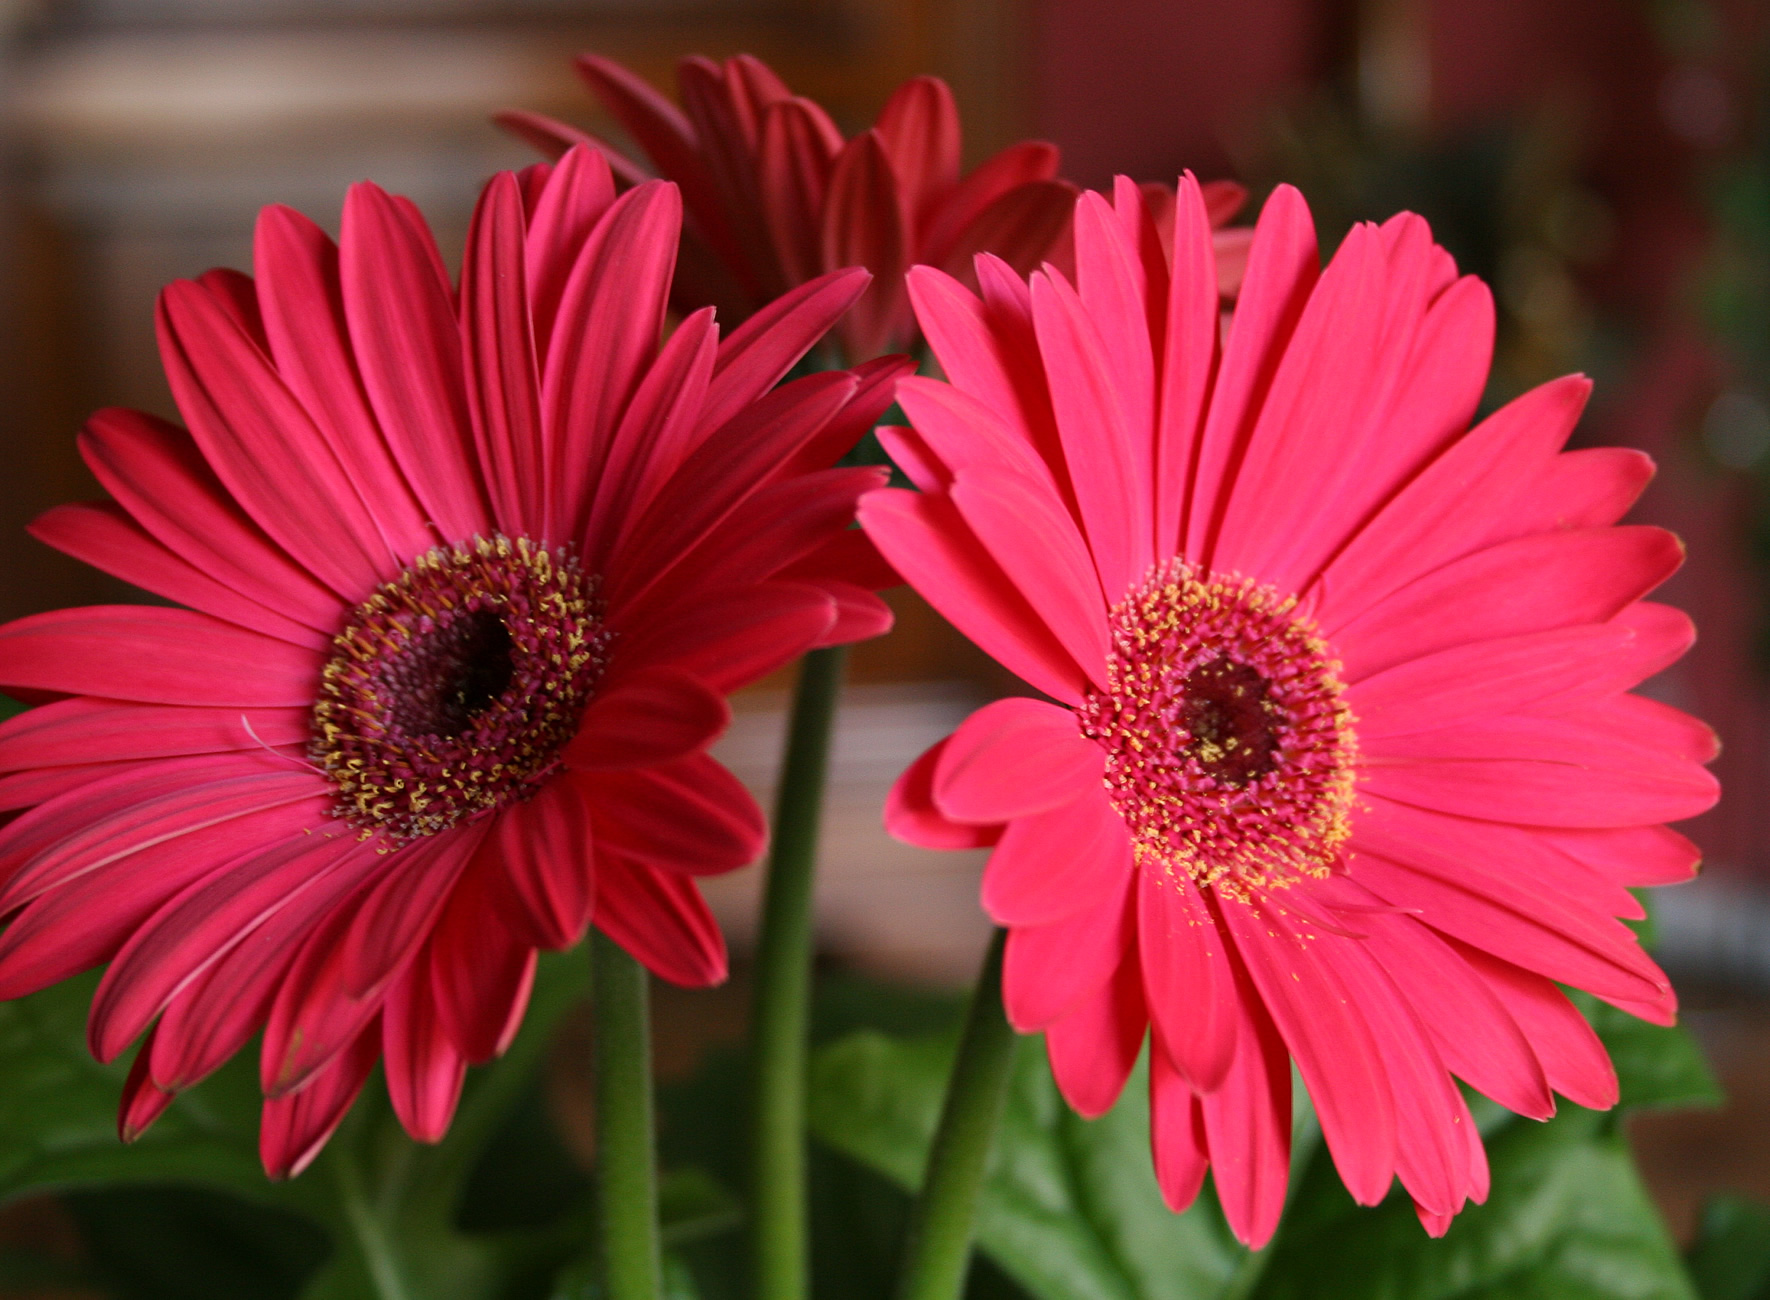 How to make cut gerbera daisies last longer